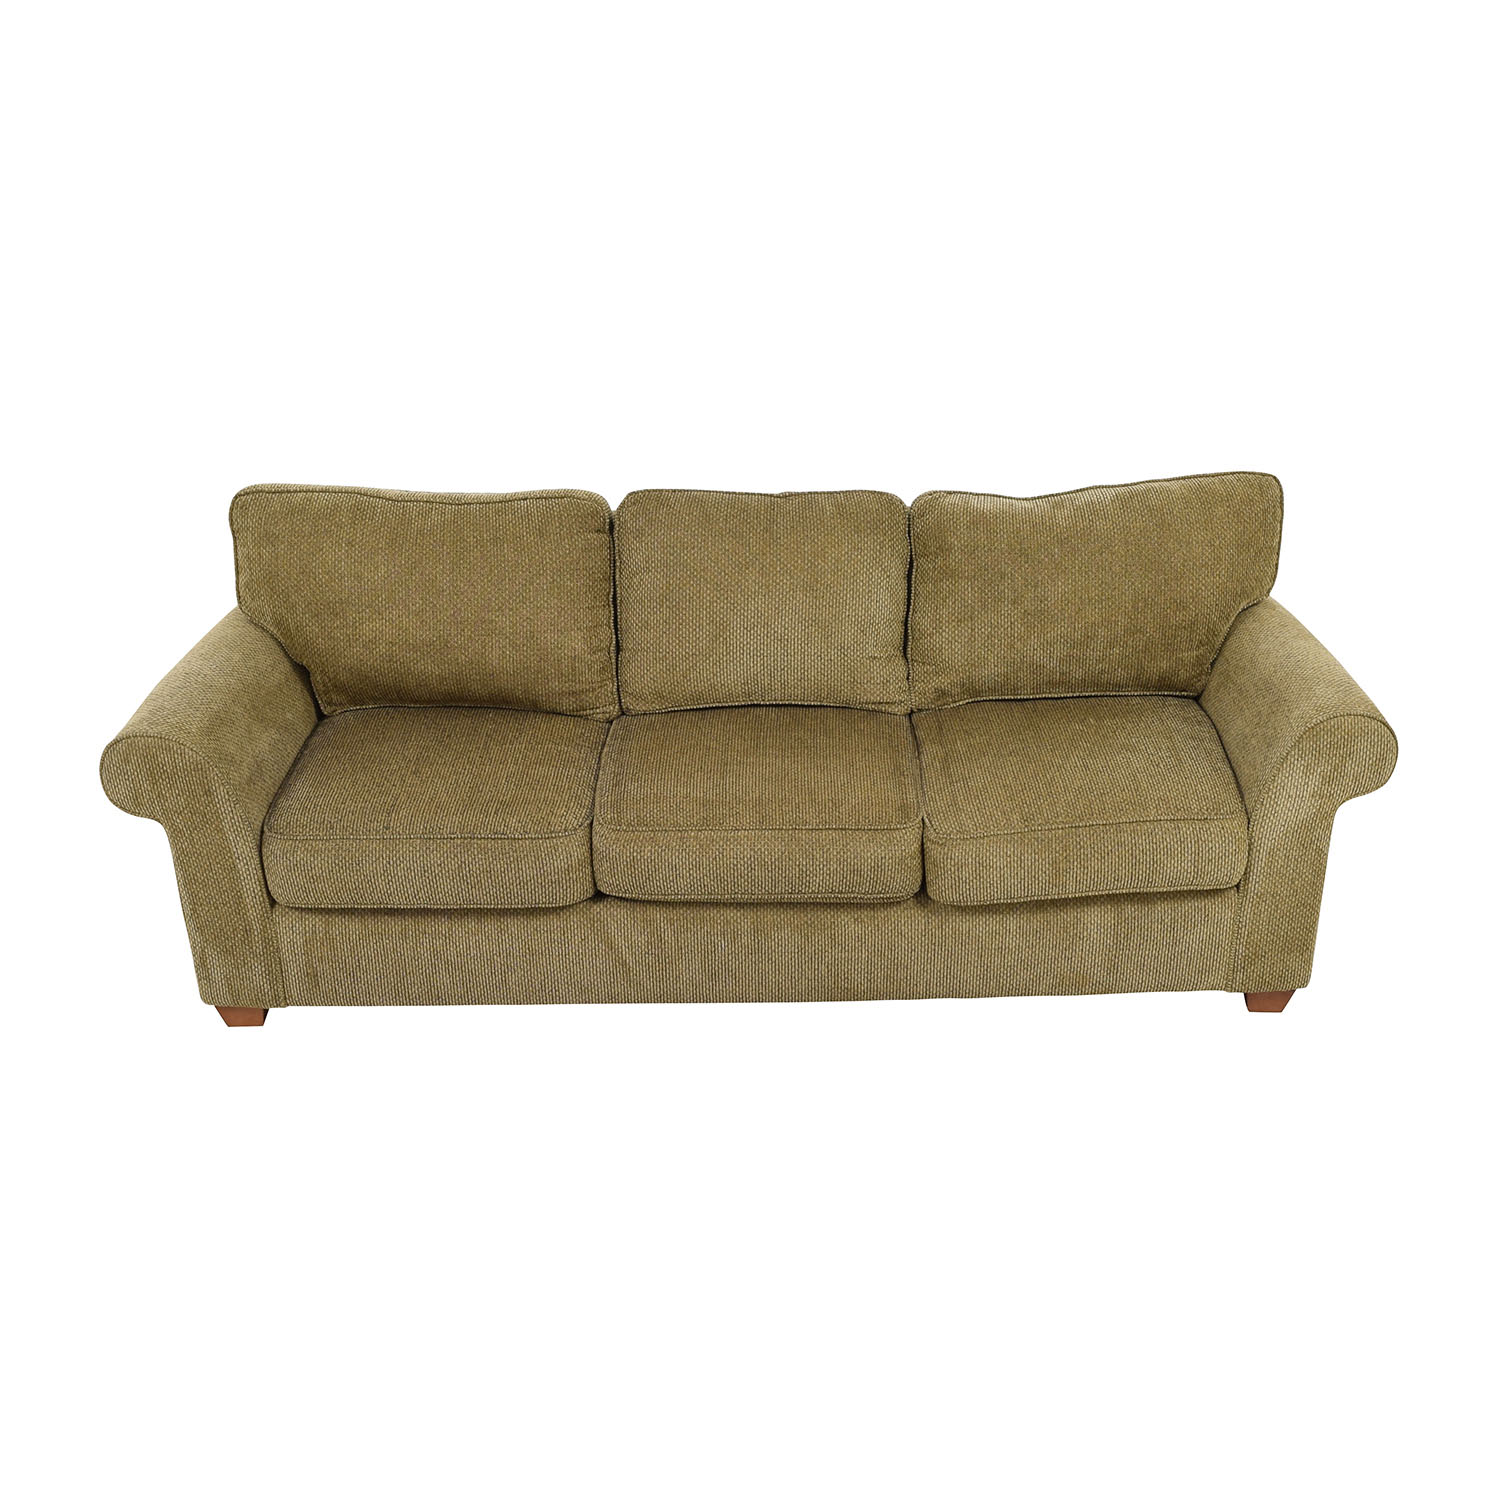 shop Bloomingdales Beige Tweed Fabric Sofa Bloomingdales Sofas